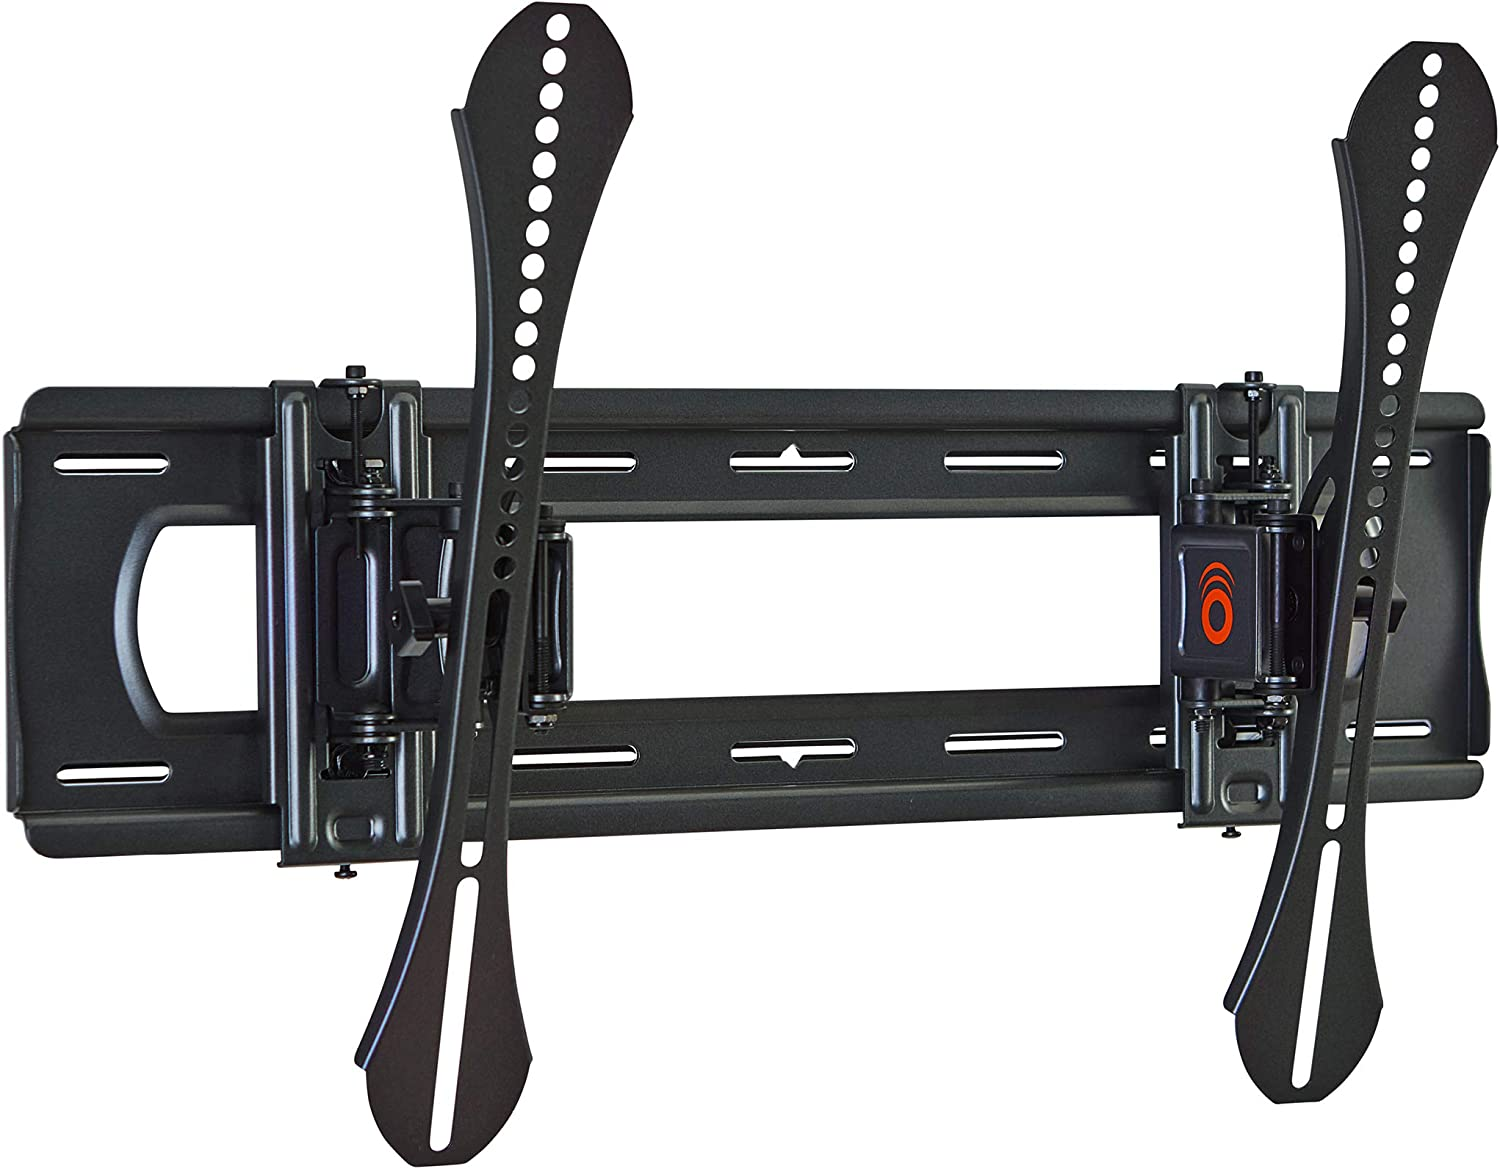 """B07G9QF6VJ ECHOGEAR Full Tilt TV Wall Mount - Advanced Extendable Bracket for Maximum Tilting Range On Large TVs - Ideal for Mounting A 40""""-85"""" TV Above A Fireplace - Easy Install & Hardware Included - EGLT2 71KAY2B2YQ4L"""